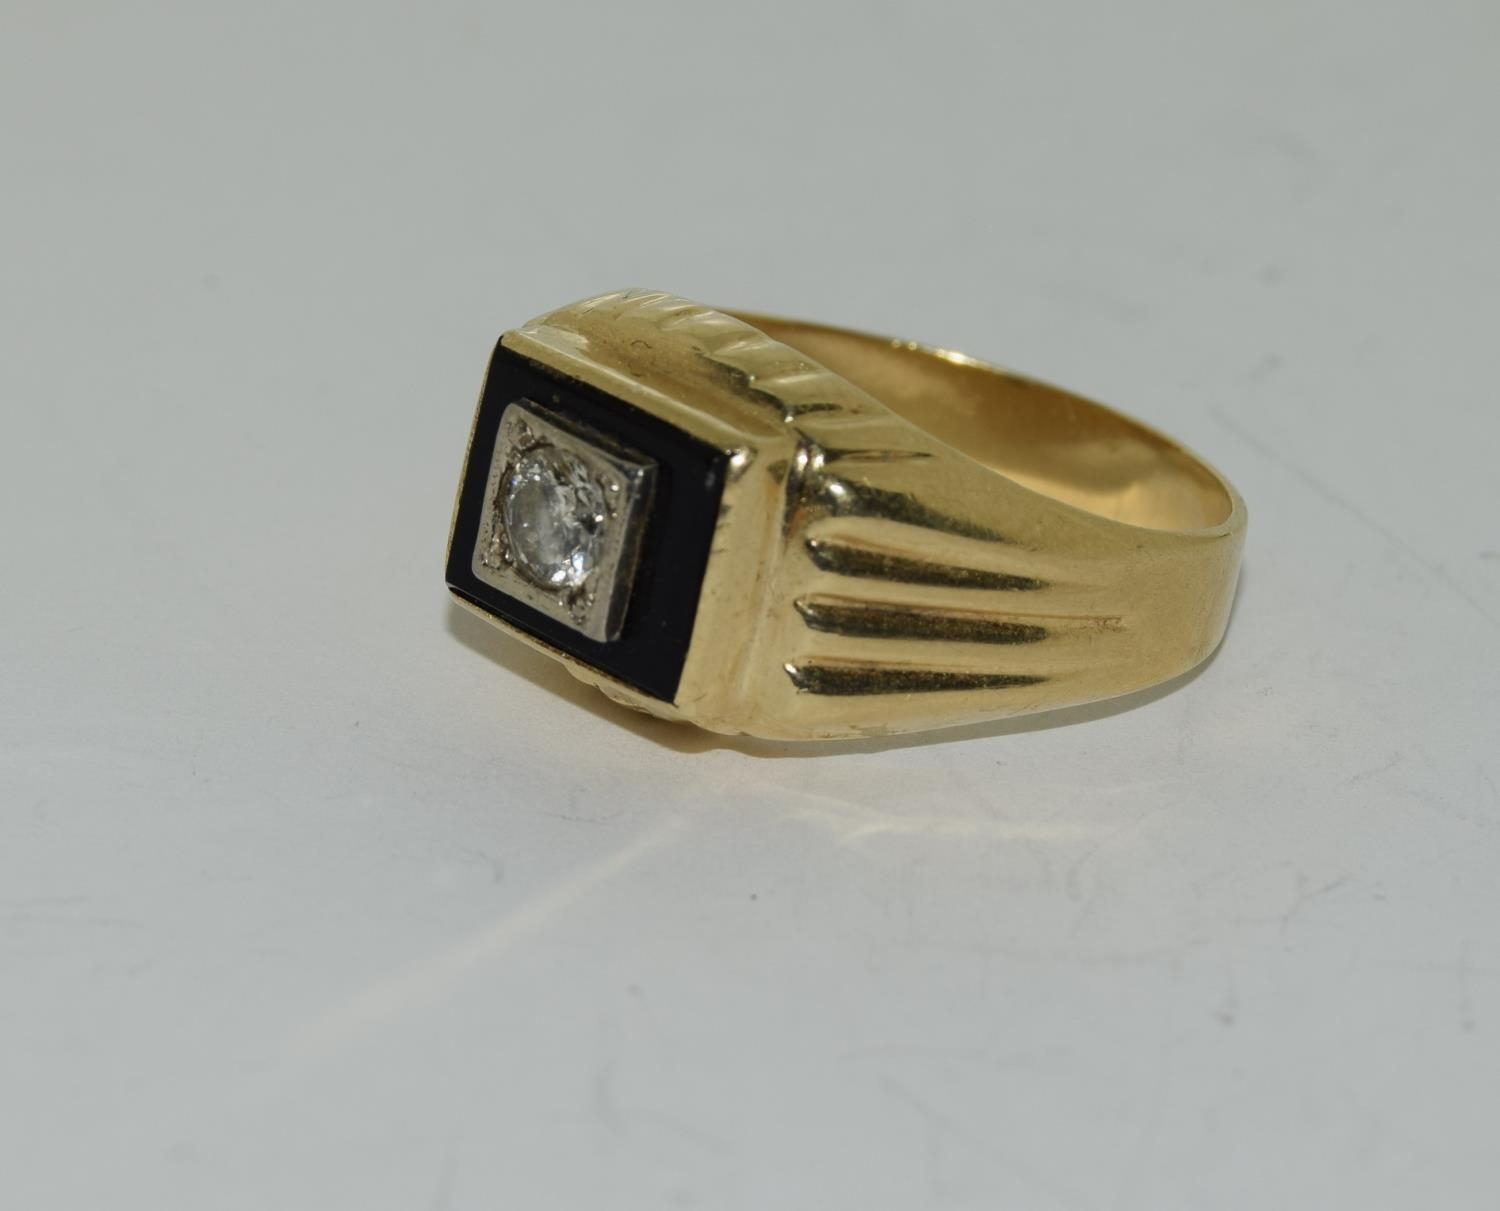 14ct gold gents onyx set with diamond approx 0.33ct signet ring size S - Image 4 of 6